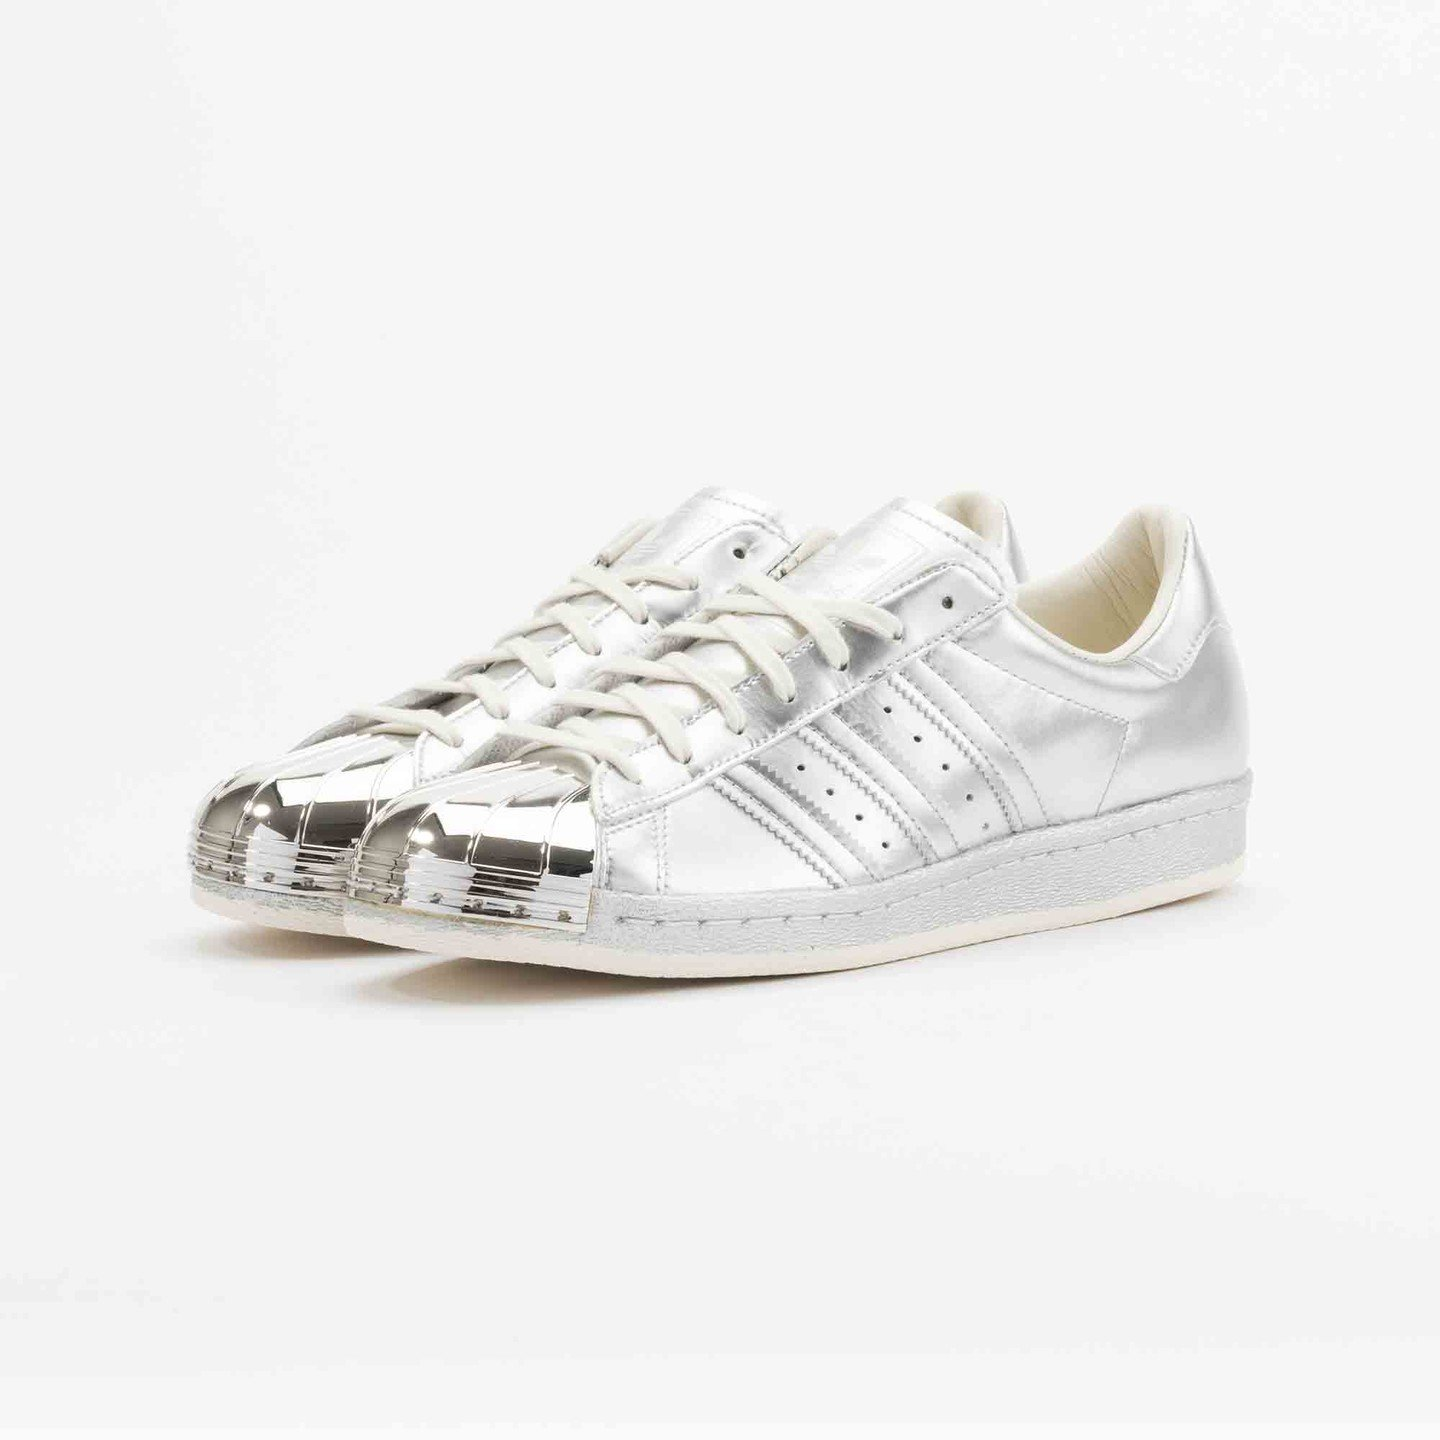 Adidas Superstar 80s Metallic Pack Silver Metallic S82741-39.33